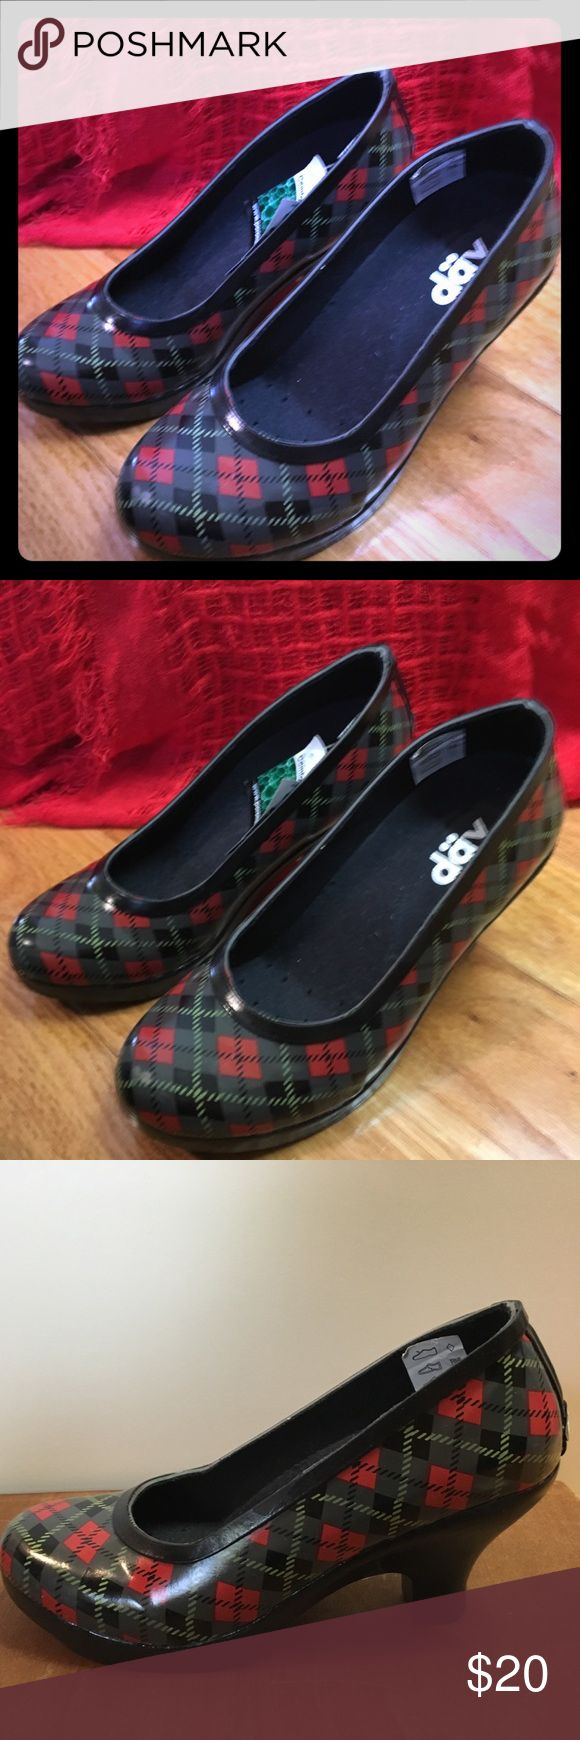 Plaid Pattern Pump by Dav Plaid pattern Pump by Dav. Never worn.  Size 6. Outside is made of a rain boot-like material. Good for rainy days when you'd rather not wear your rainboots! Dav Shoes